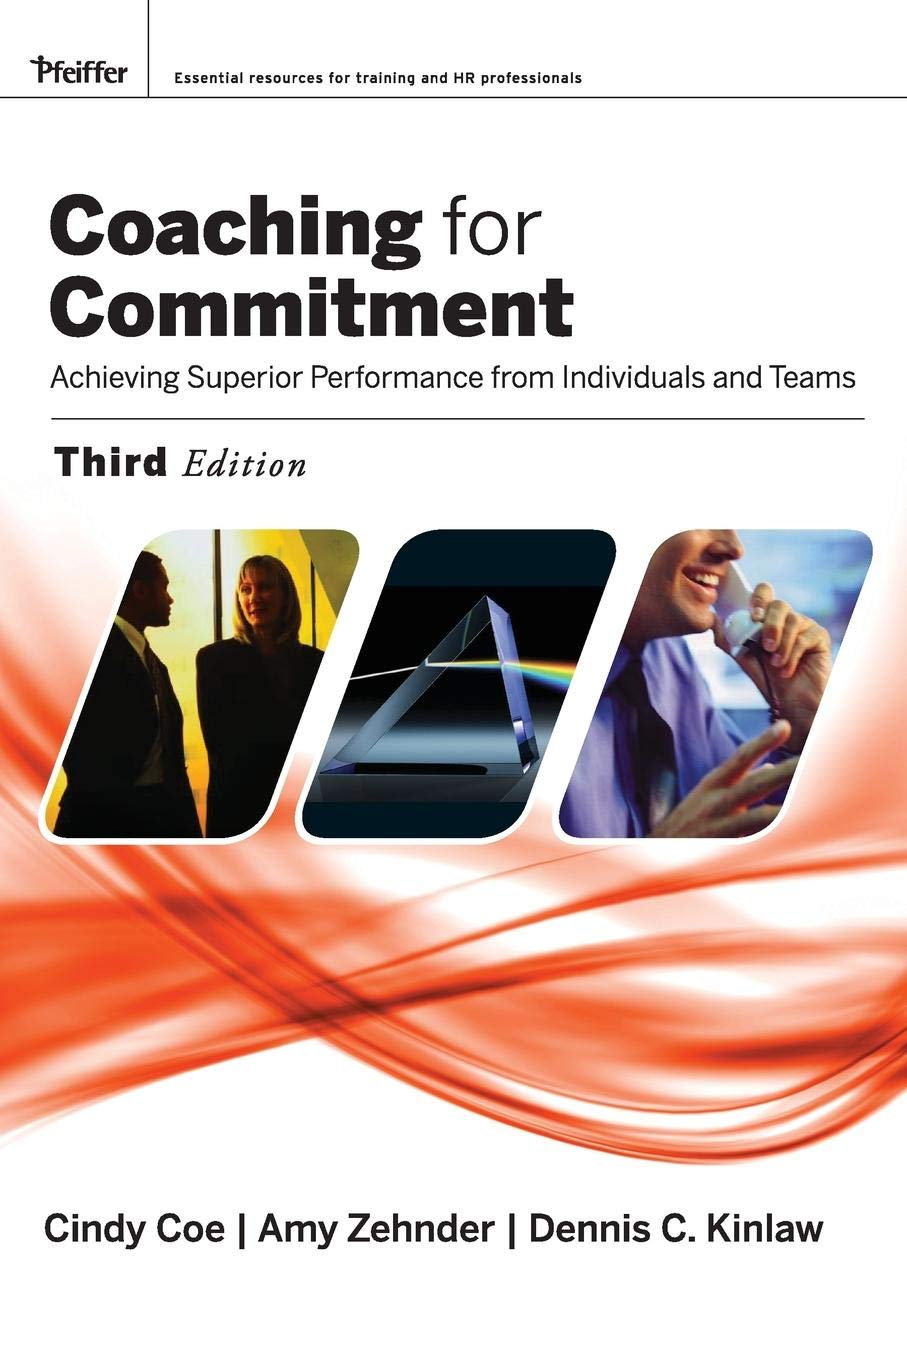 Coaching For Commitment Third Edition: Amazon.es: Coe, Cindy: Libros en idiomas extranjeros